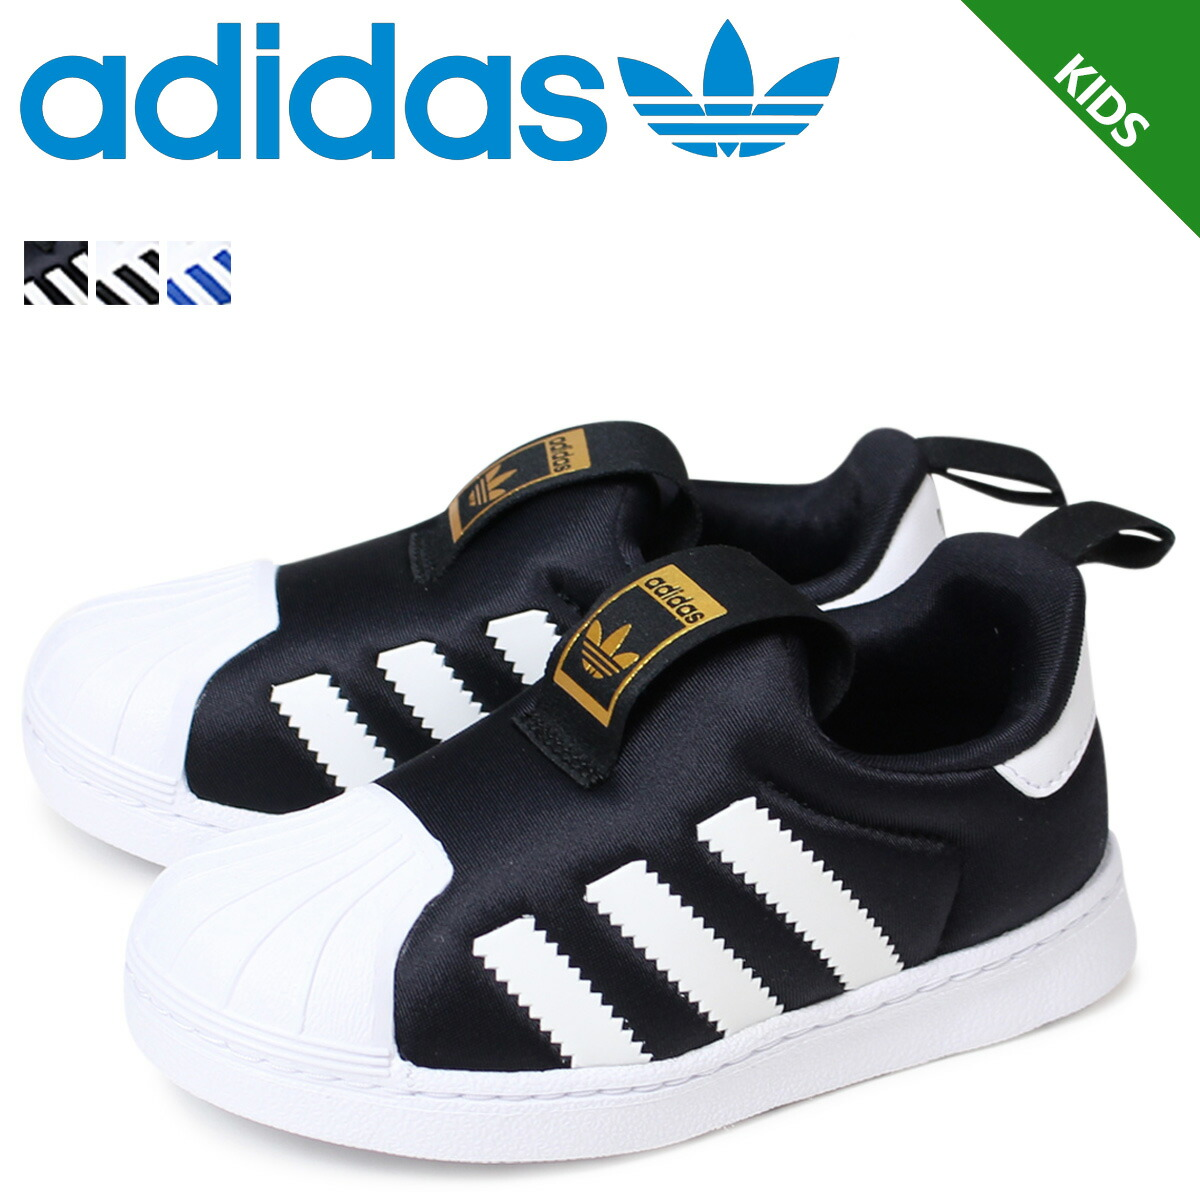 adidas Originals superstar kids baby Adidas sneakers SUPERSTAR 360 I BB2516  BB2517 S82711 shoes